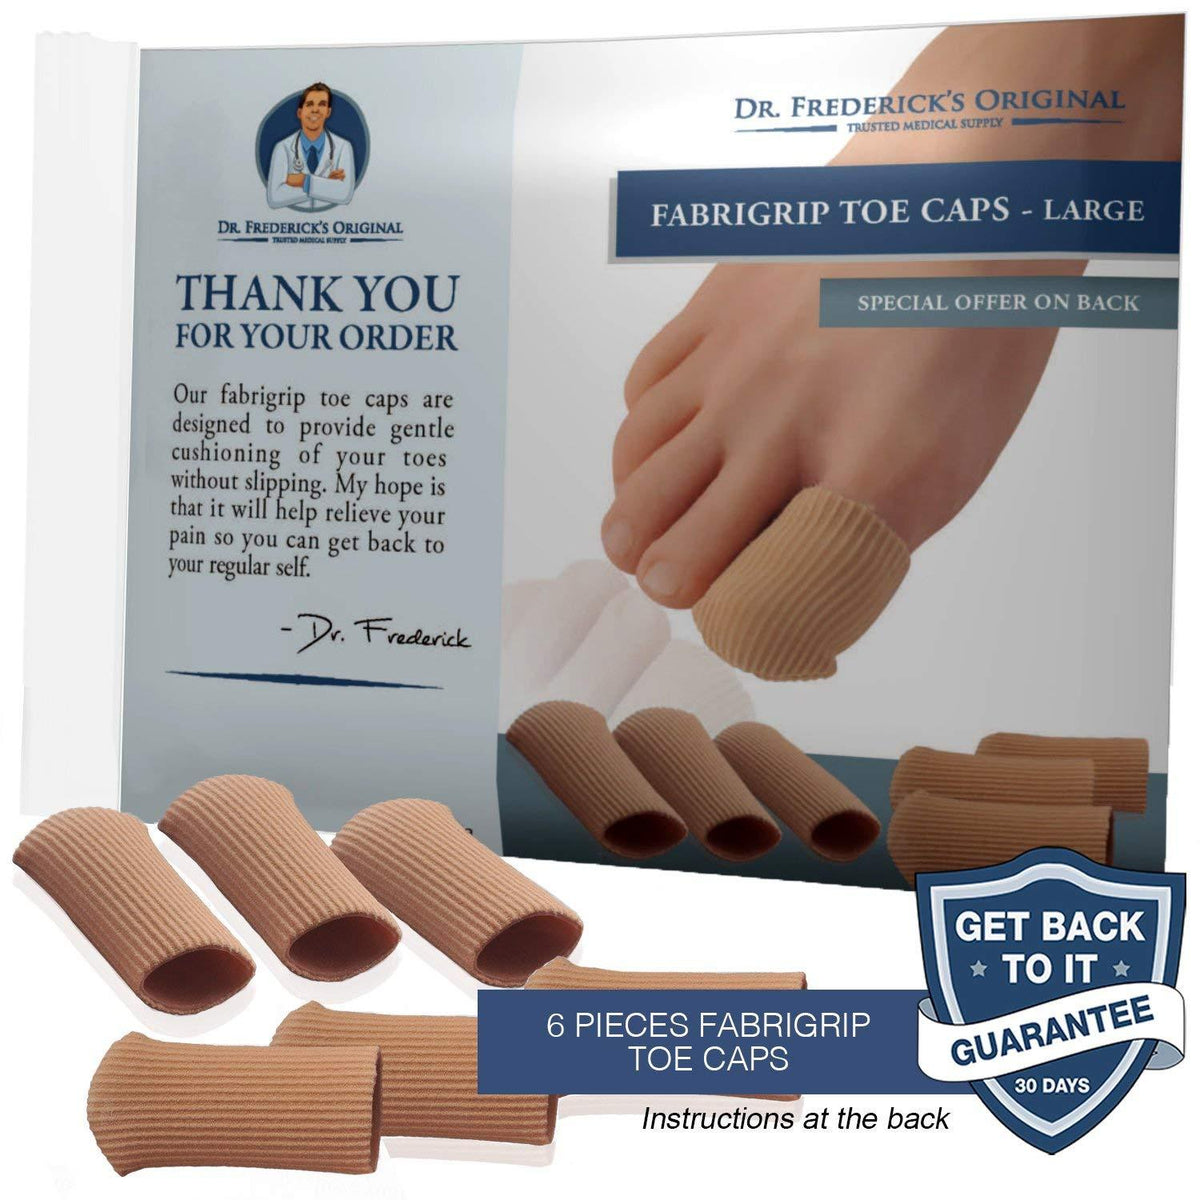 Dr. Frederick's Original Fabrigrip Toe Caps -- 4 Pieces - for Corns, Calluses, Blisters, and Ingrown Toenails Foot Pain Dr. Frederick's Original Large